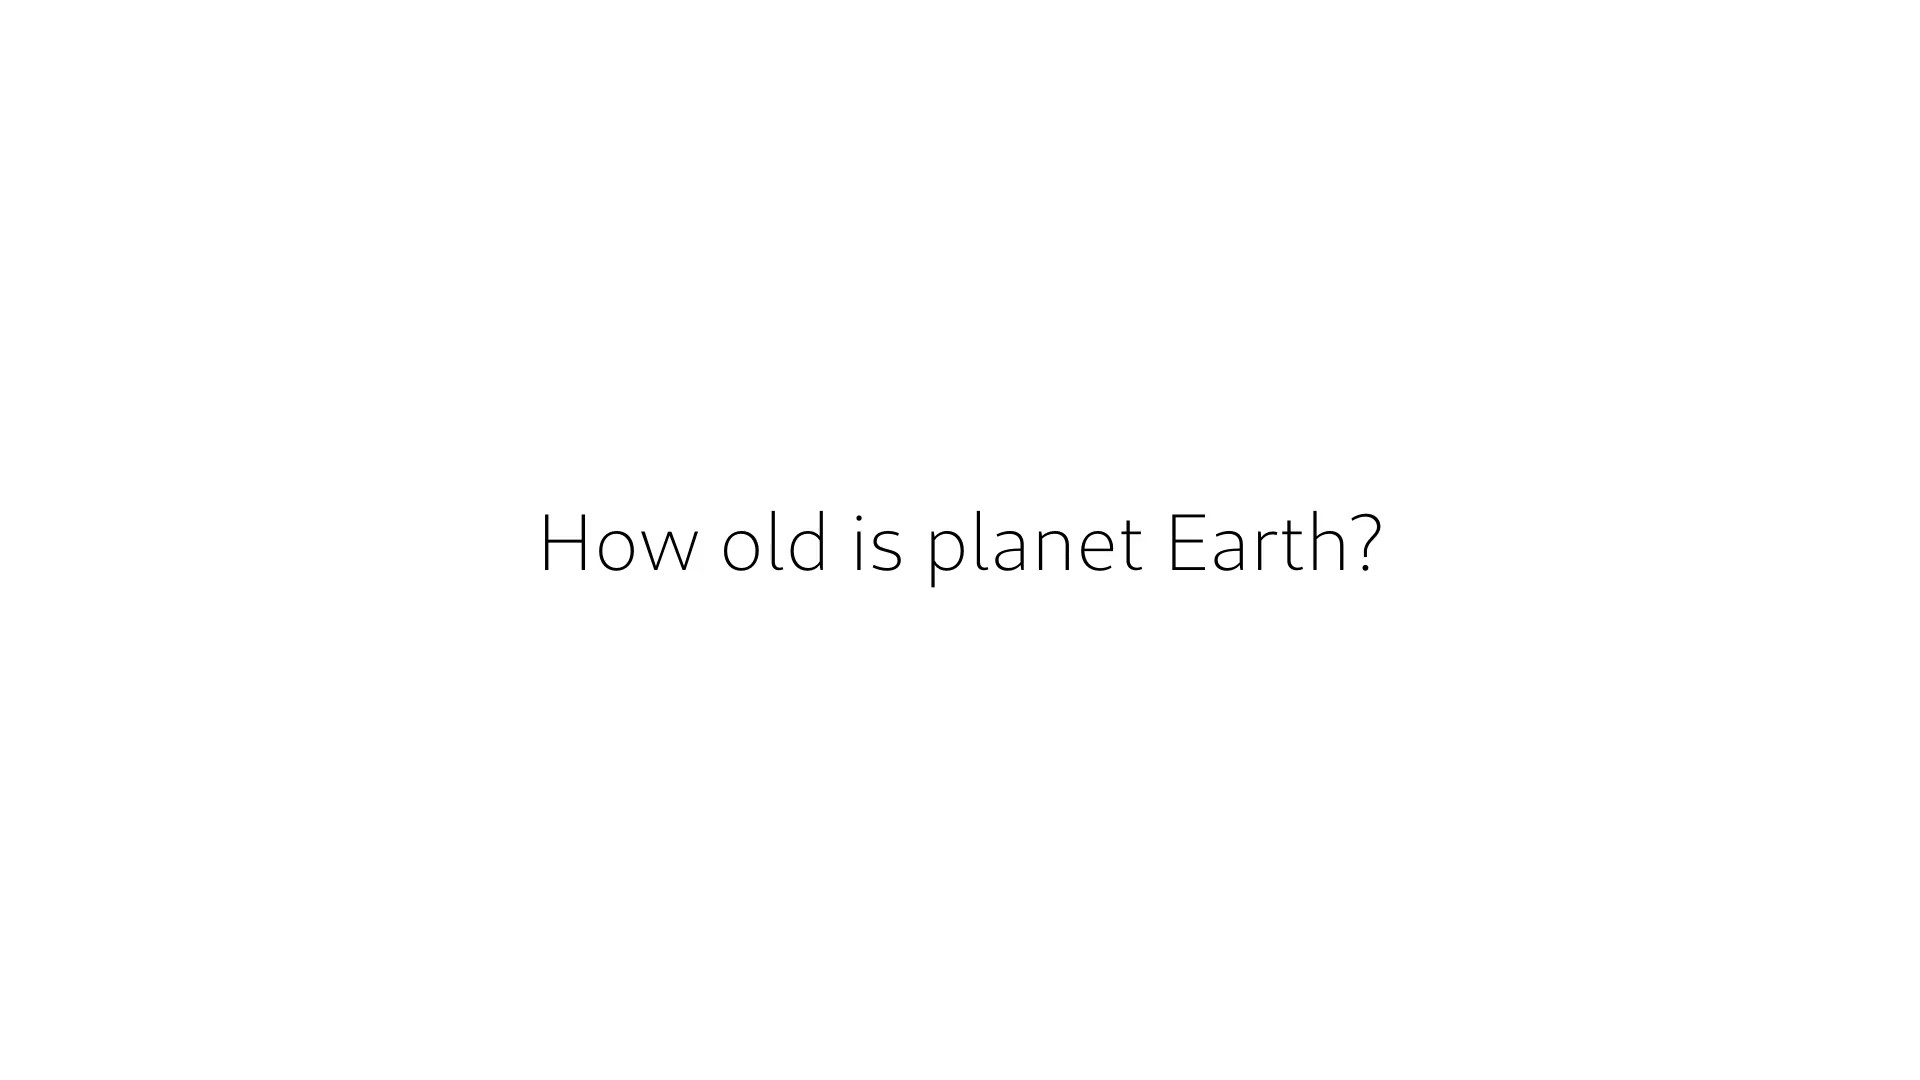 11. How old is planet Earth?